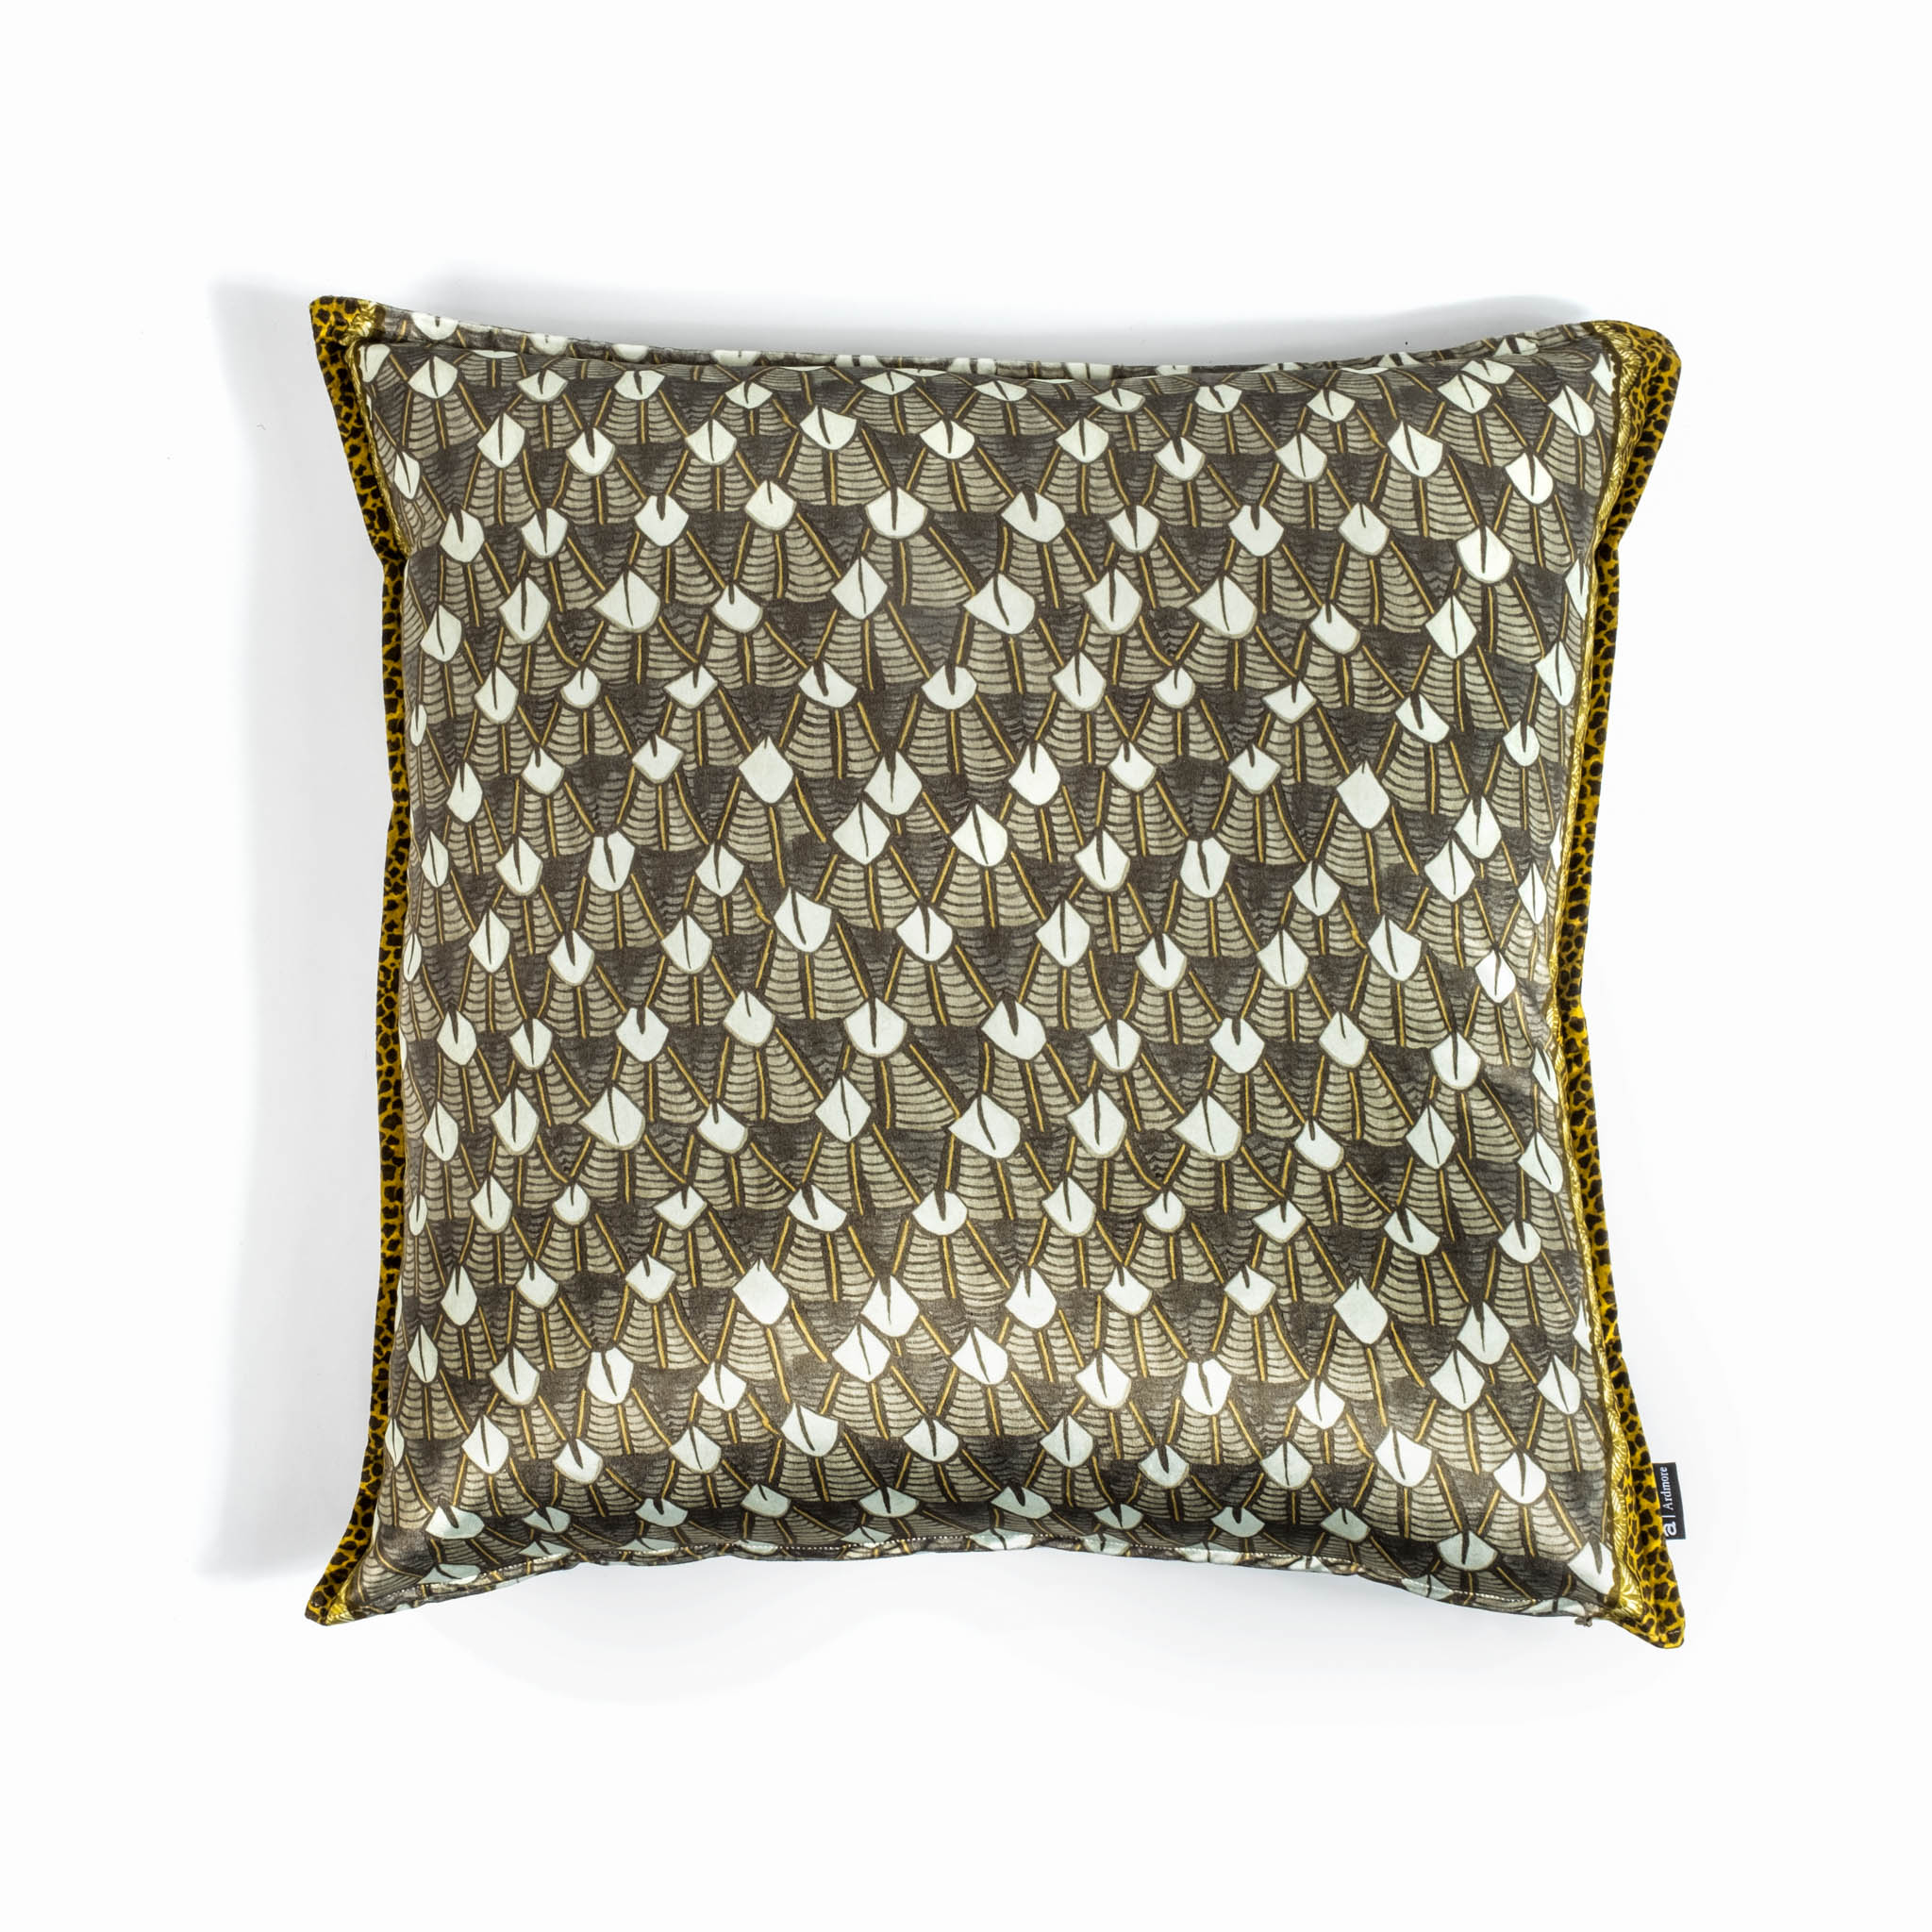 Feather Pillow - Velvet - Silver Ripple